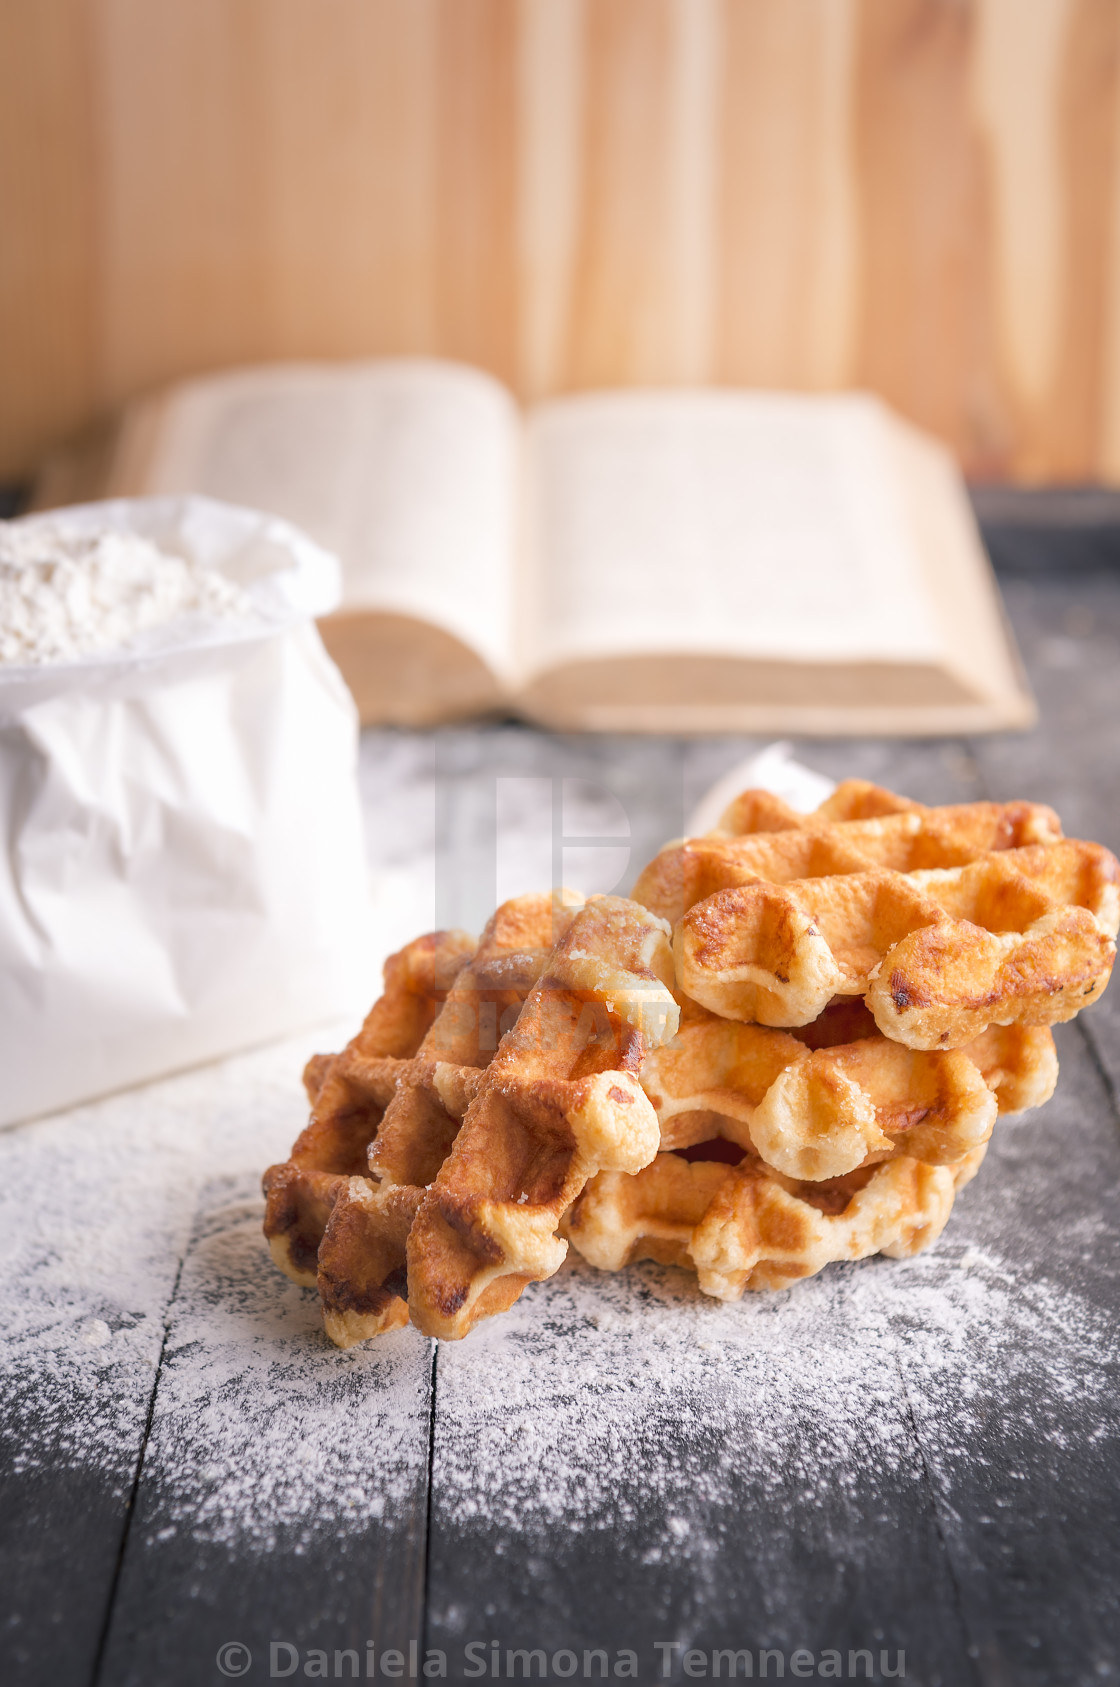 Homemade belgian waffles - License